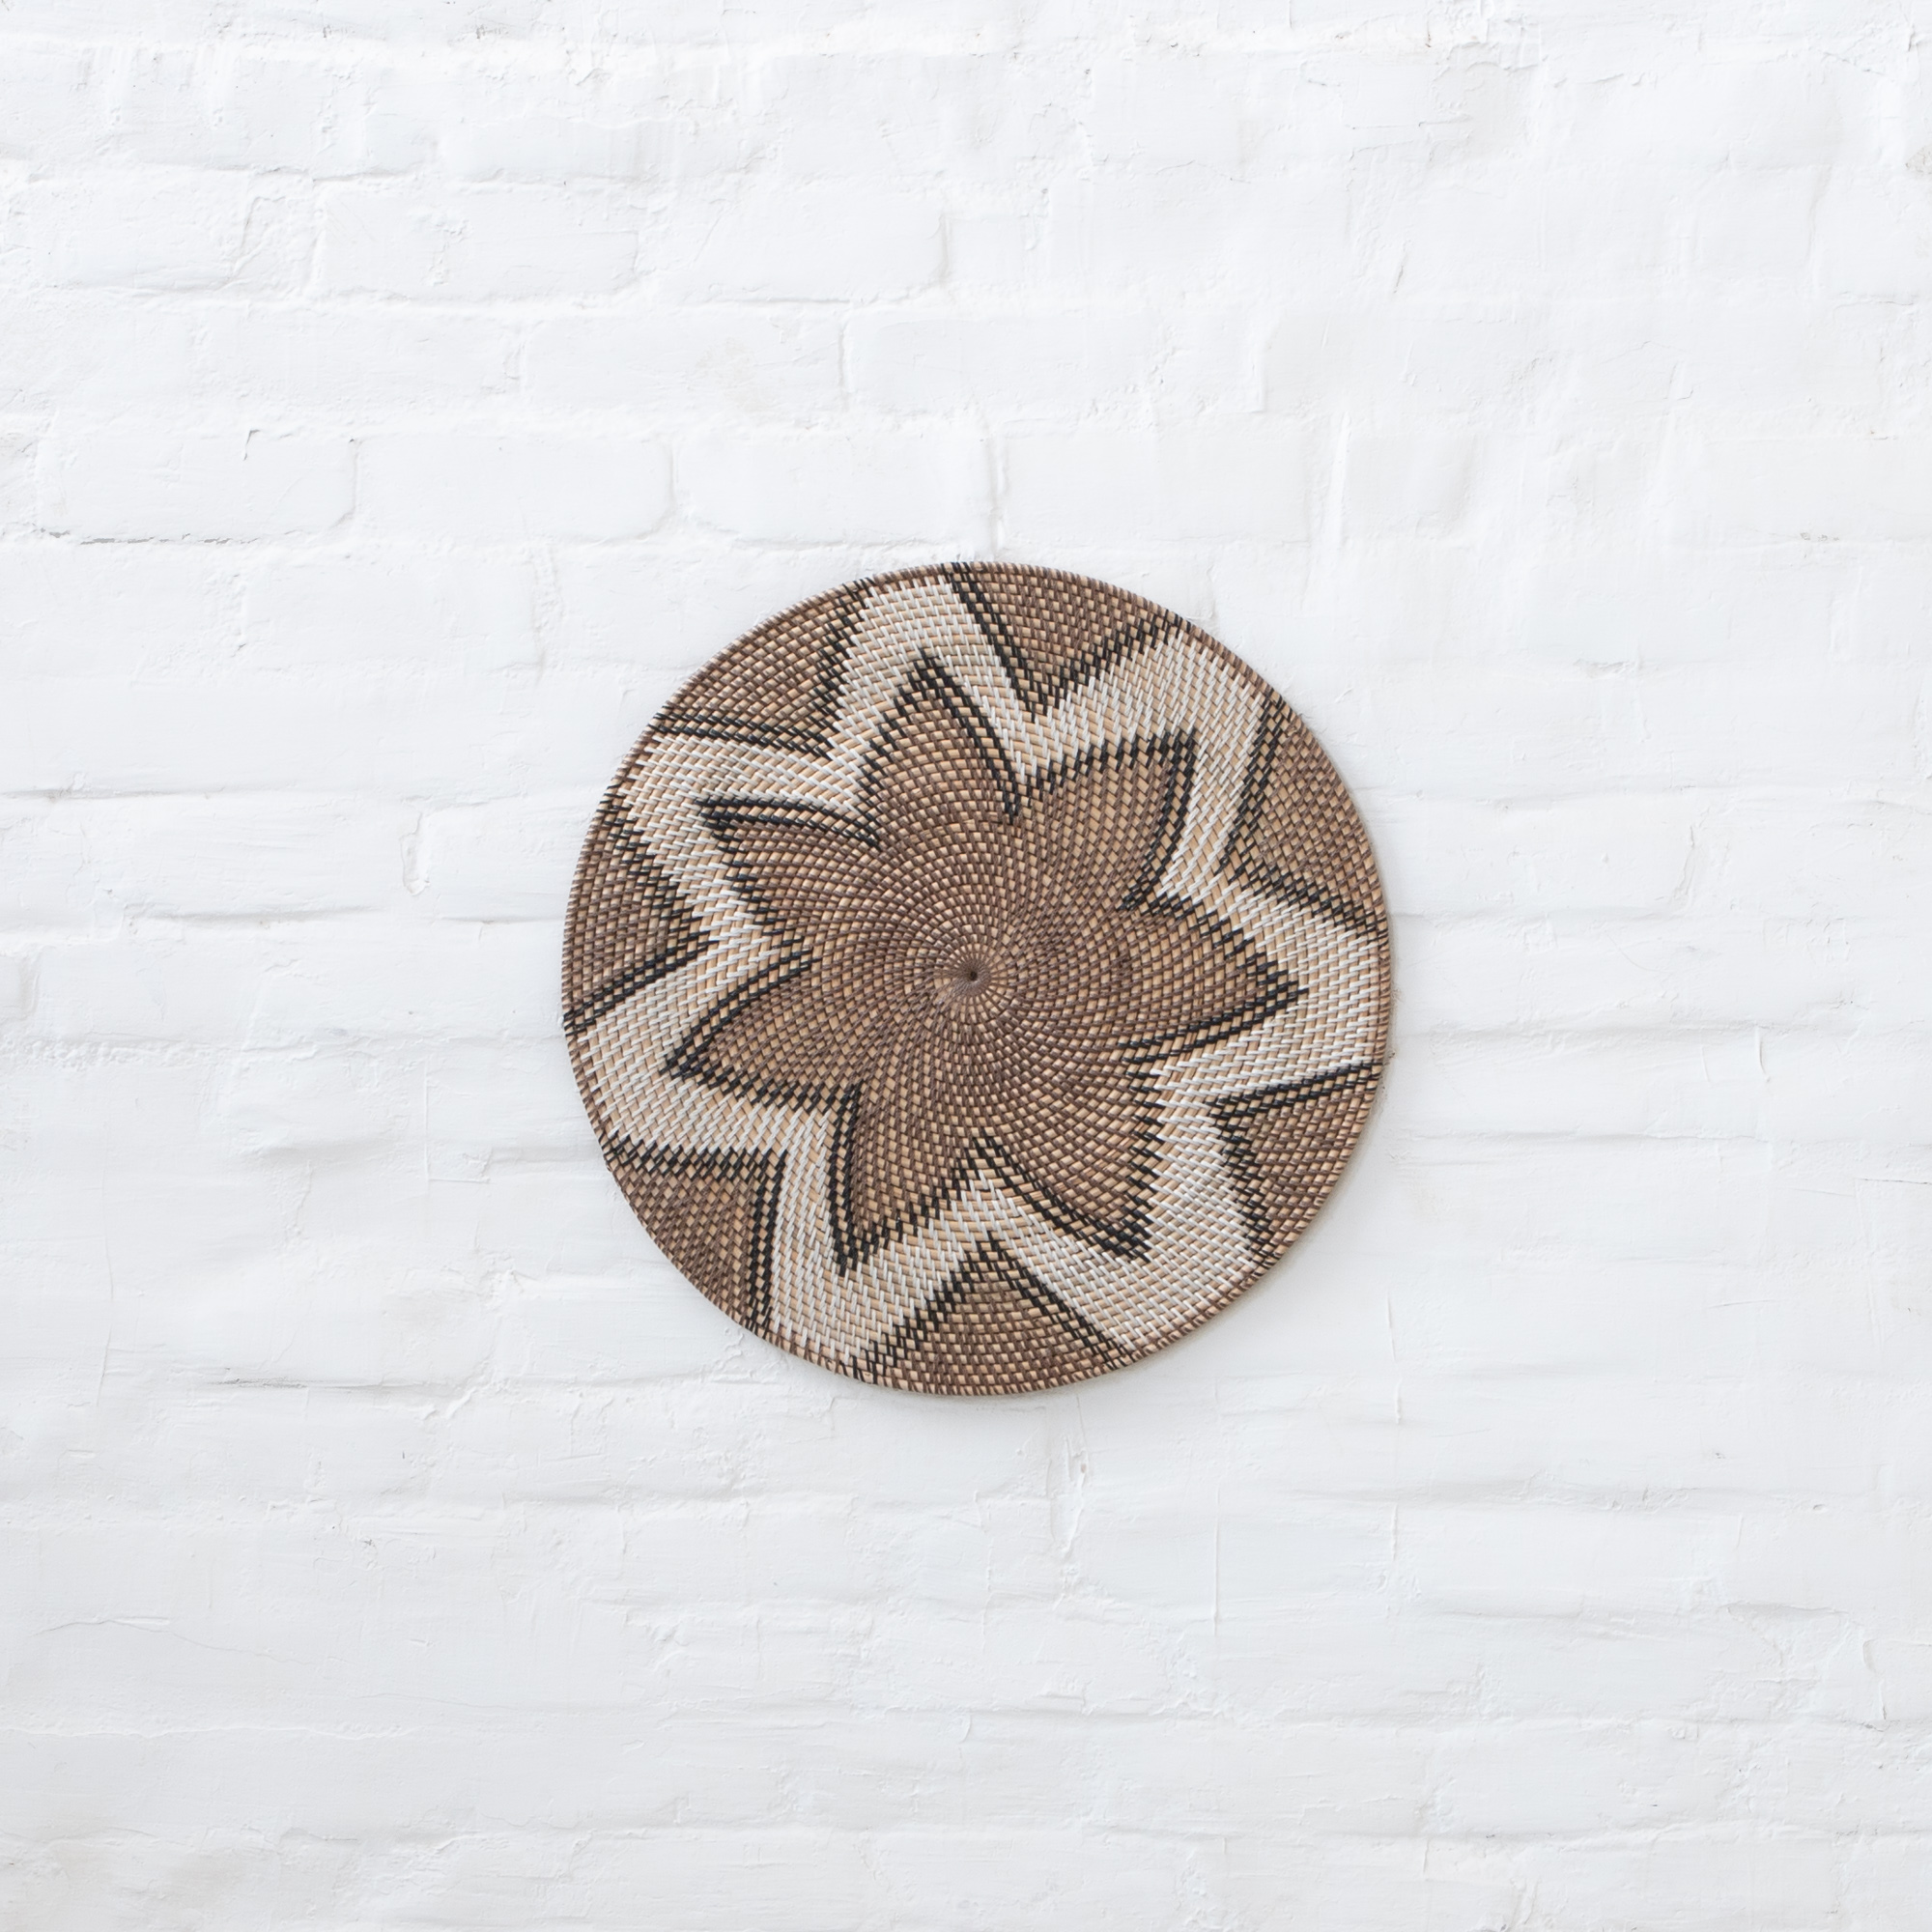 Malay Handwoven Wall Decor – Small